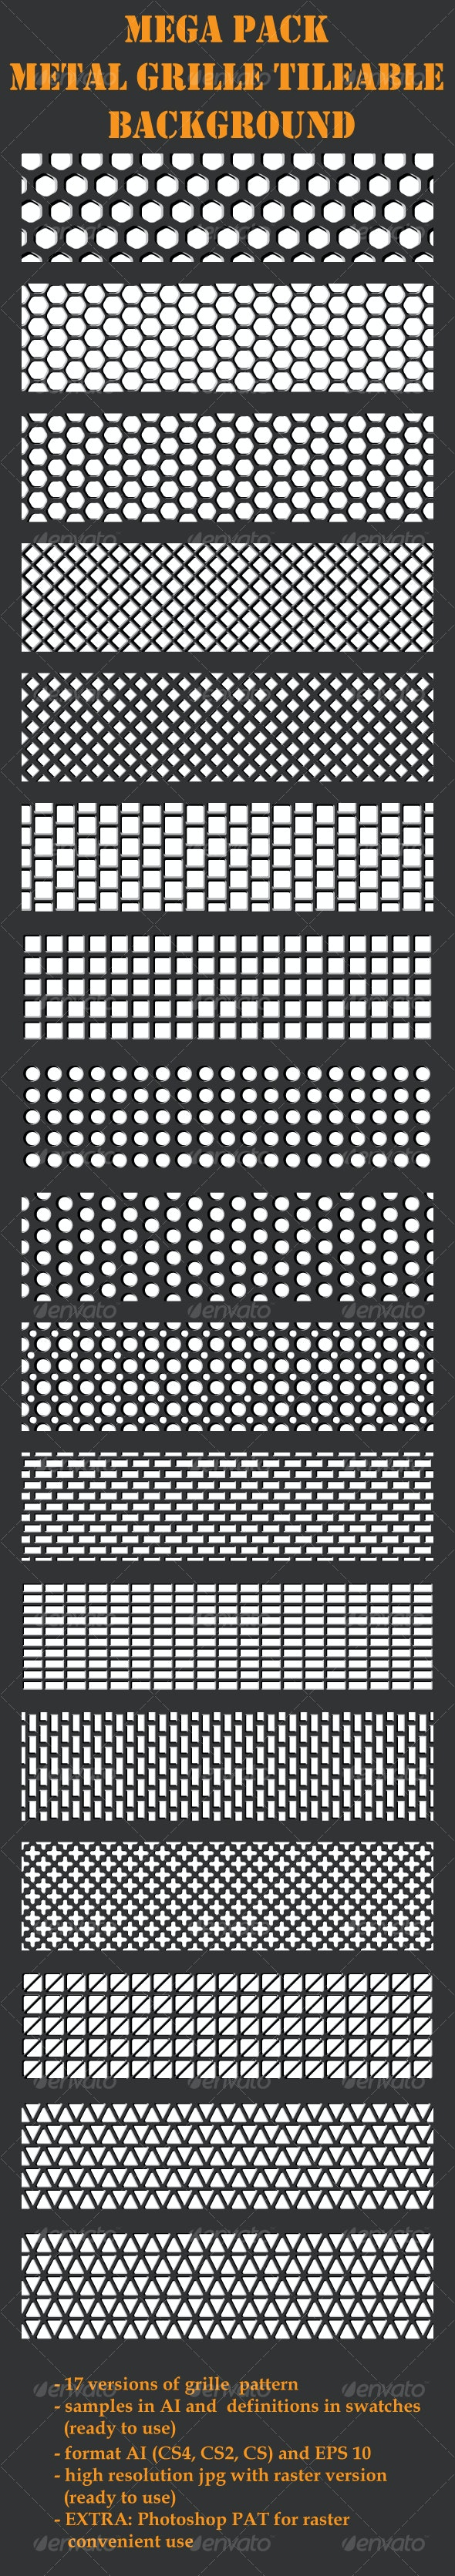 Grille Metal Backgrounds - Mega Pack - 17 patterns - Patterns Decorative